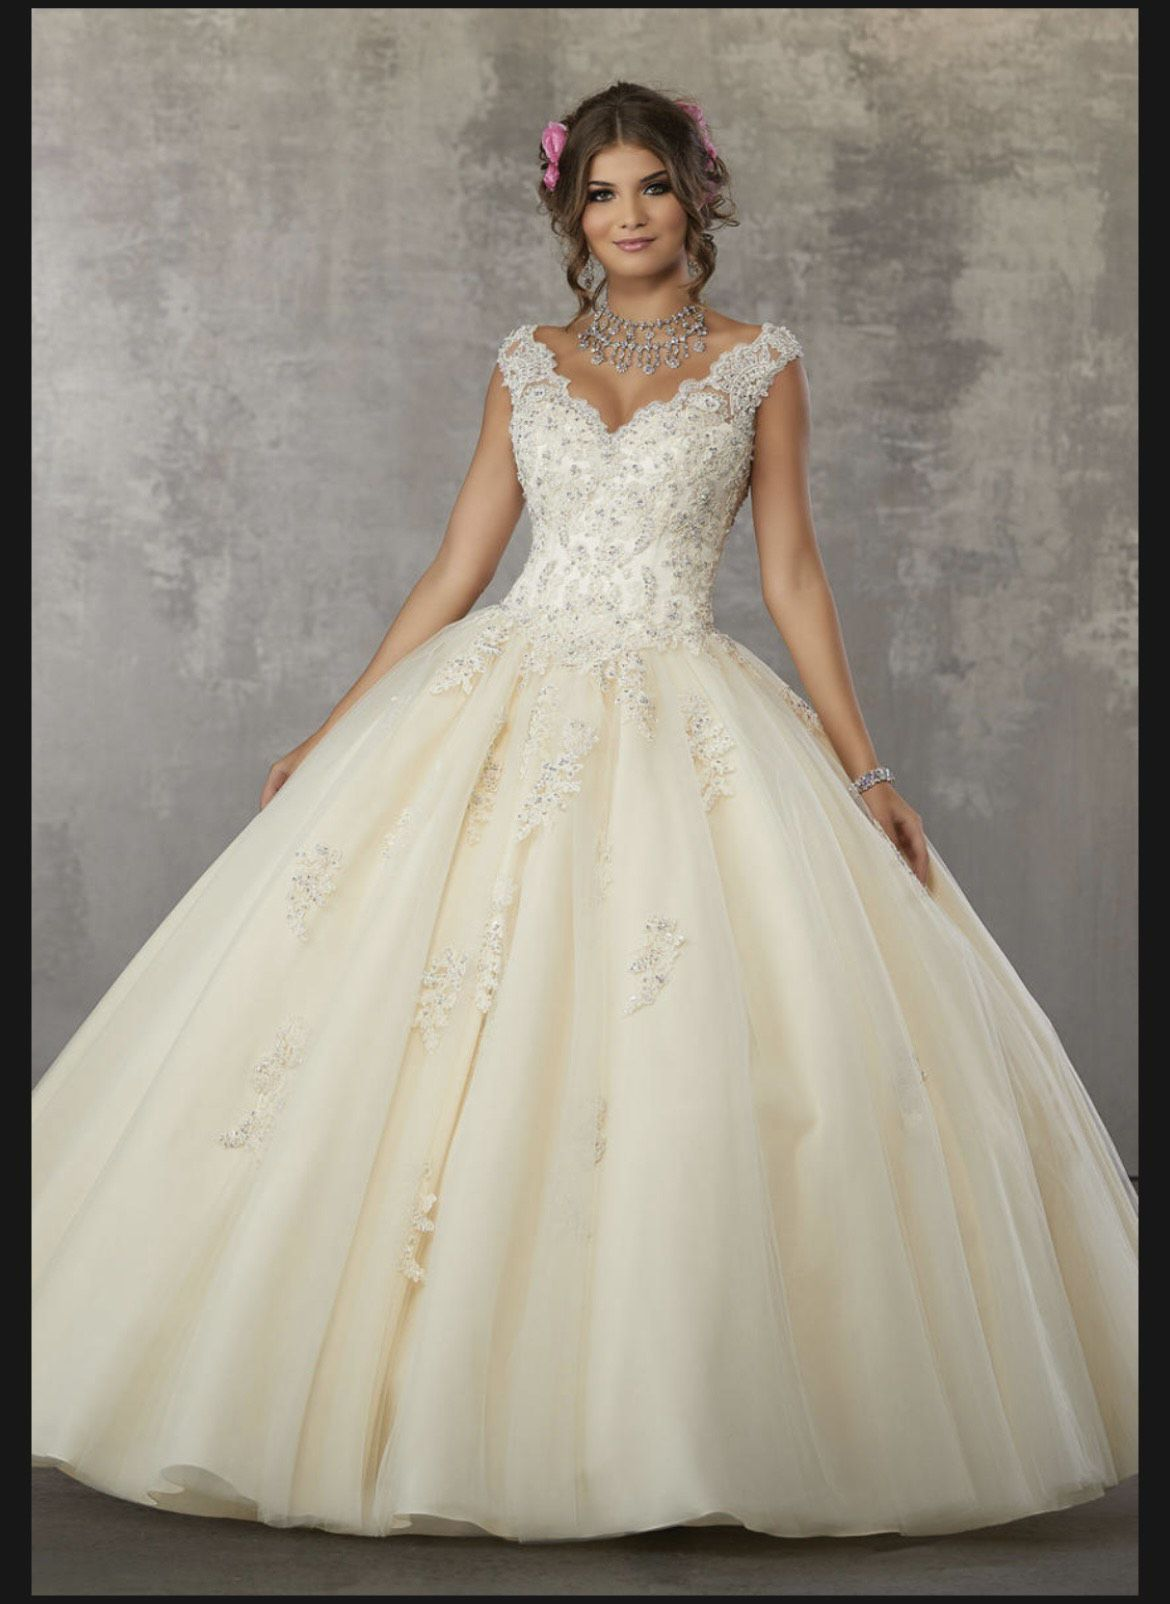 Mori Lee Nude Size 8 Quinceanera Lace Ball gown on Queenly